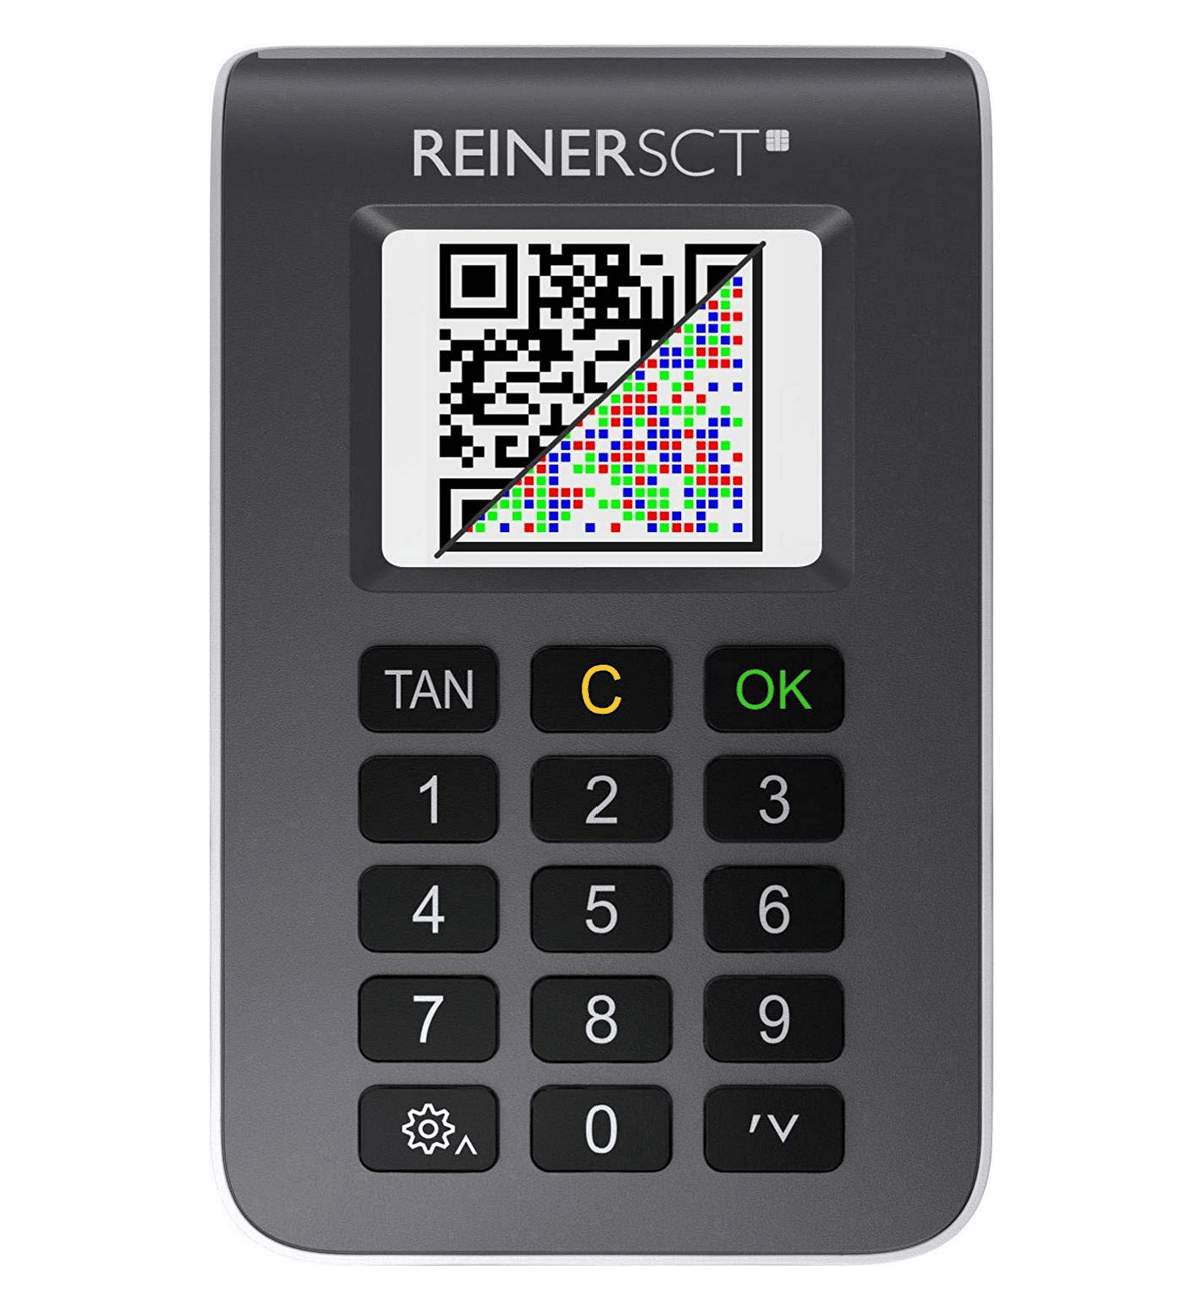 ReinerSCT tanJack photo QR